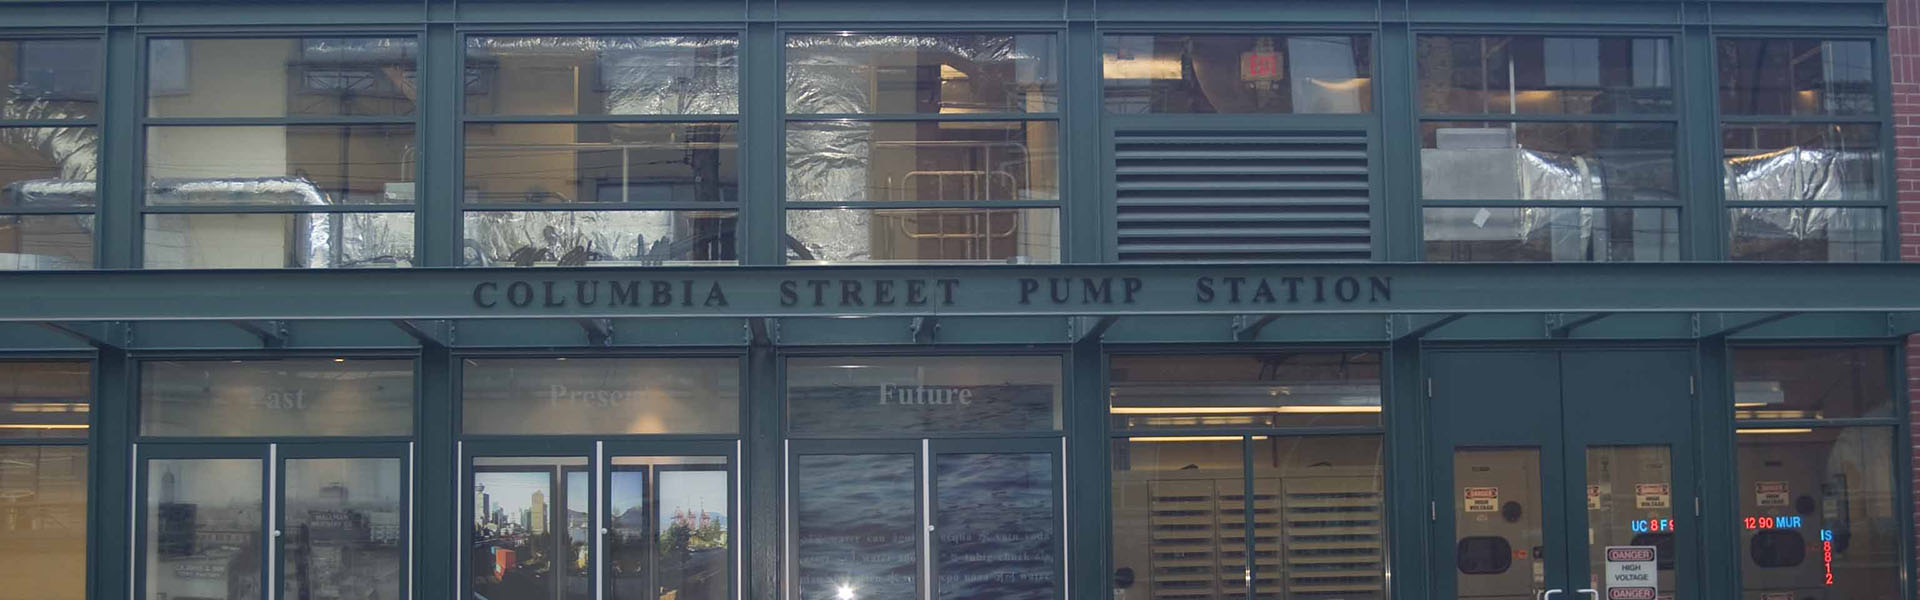 Columbia_pump_station_banner